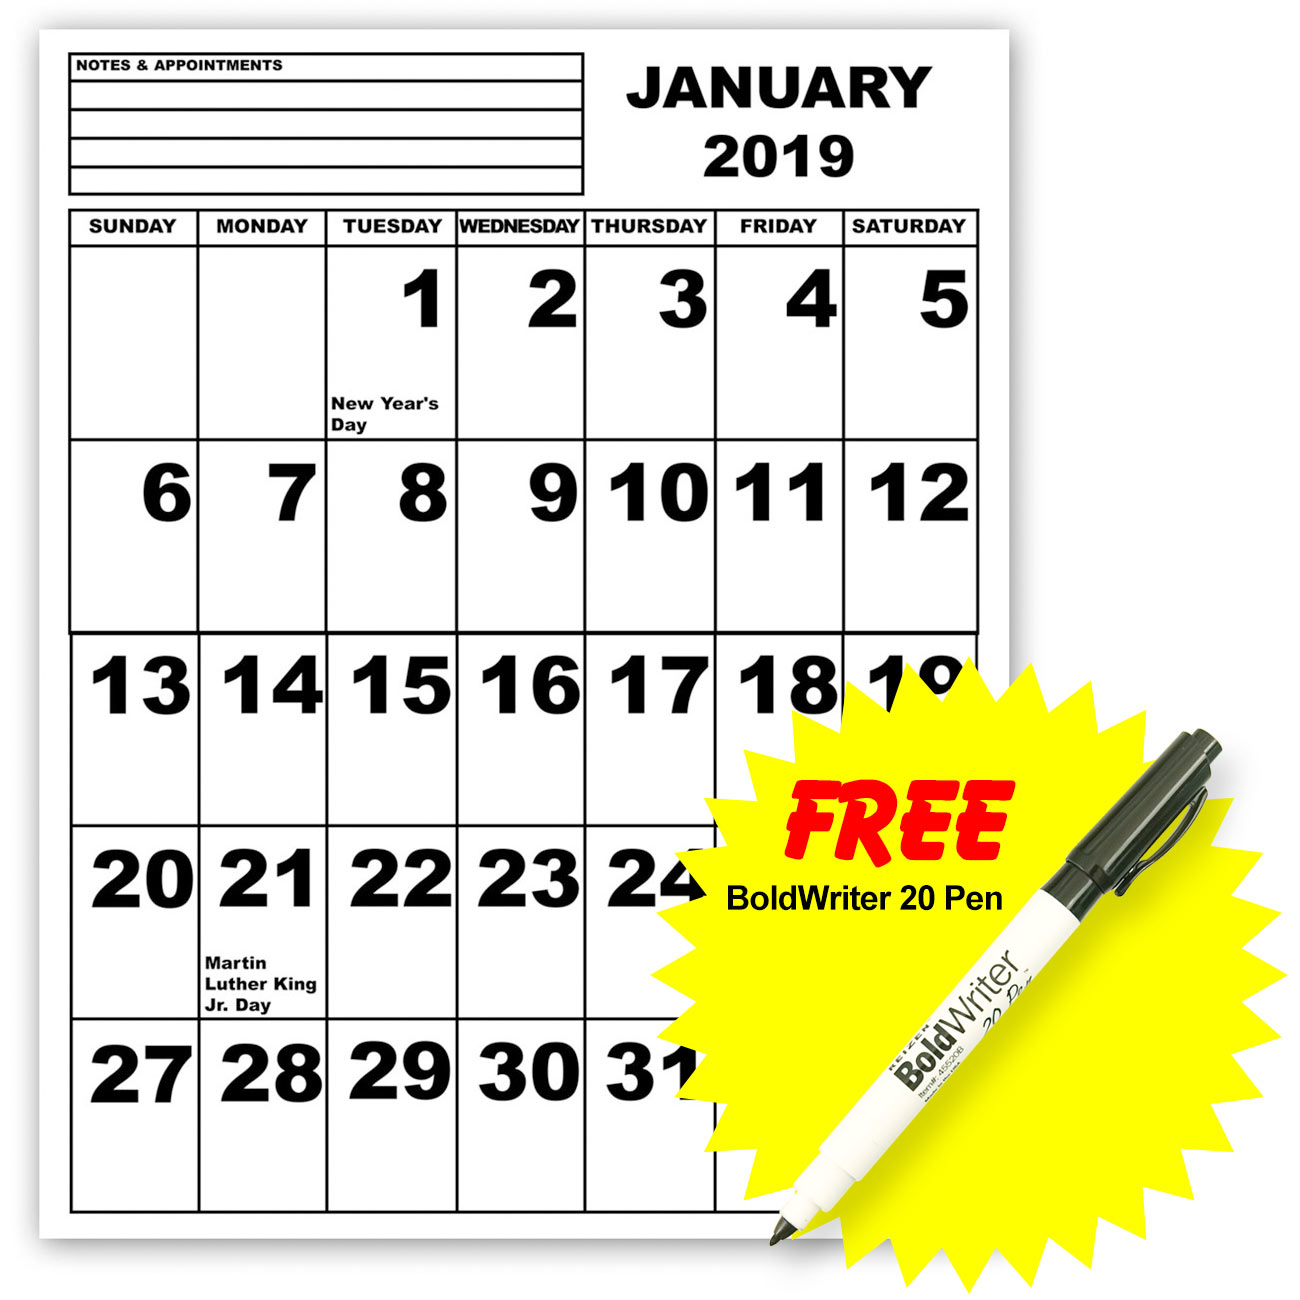 Jumbo Print Calendar - 2019 with BoldWriter 20 Pen